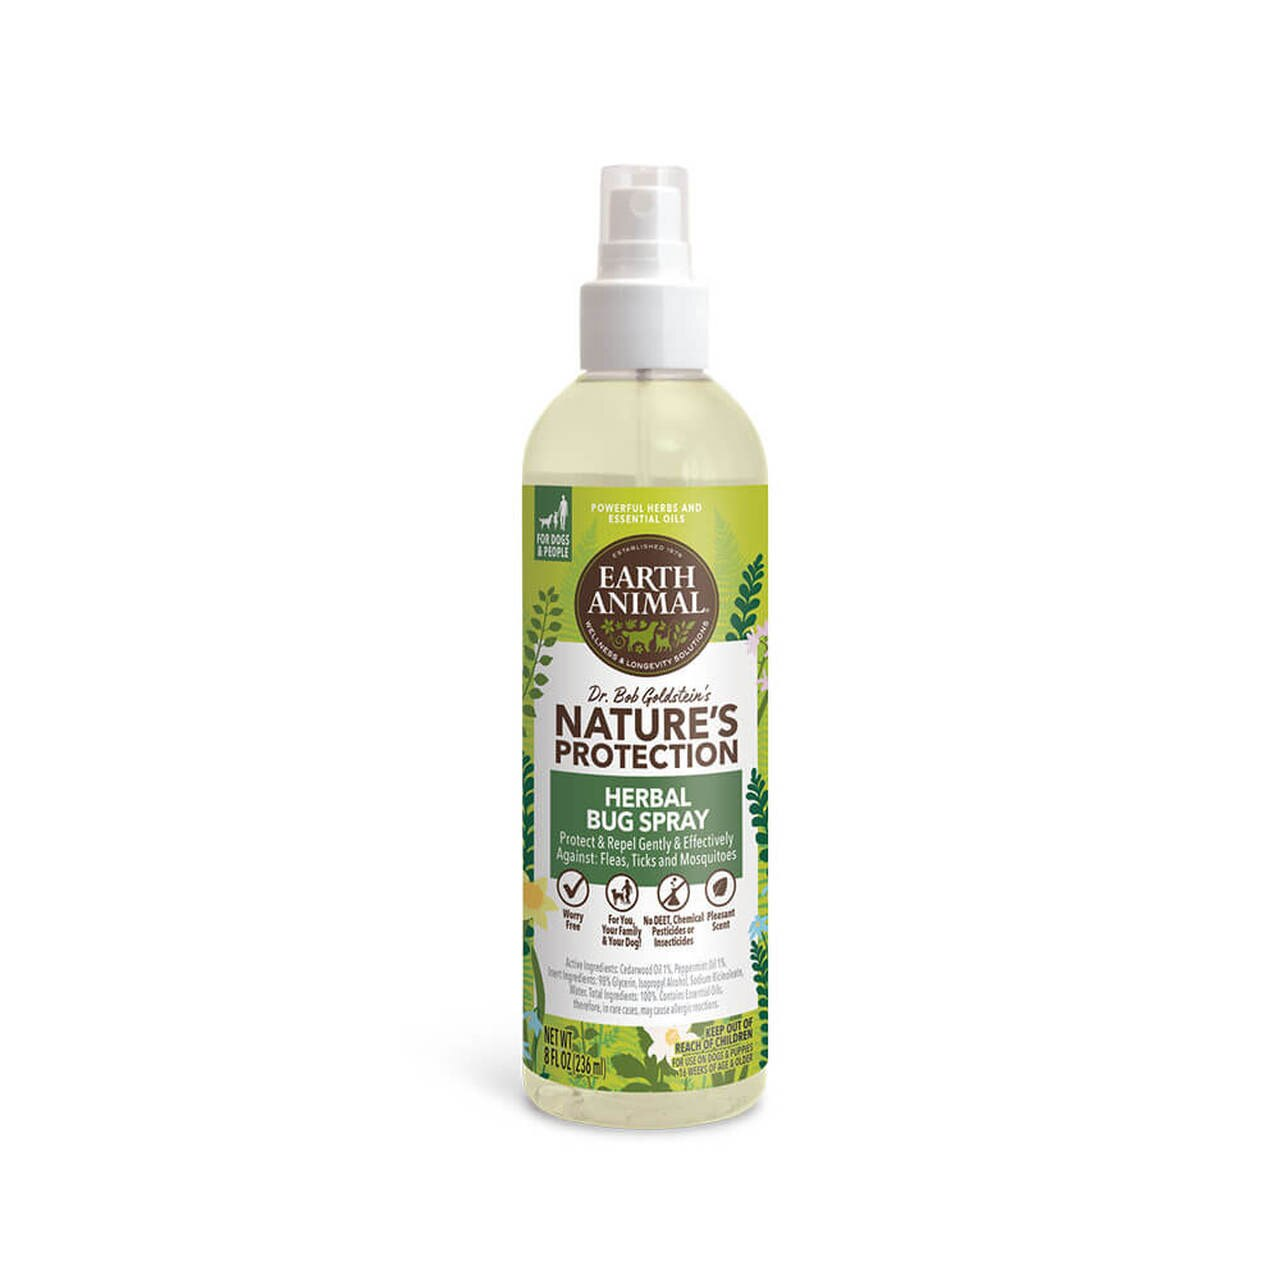 Earth Animal Nature's Protection Herbal Bug Spray for Dogs Image